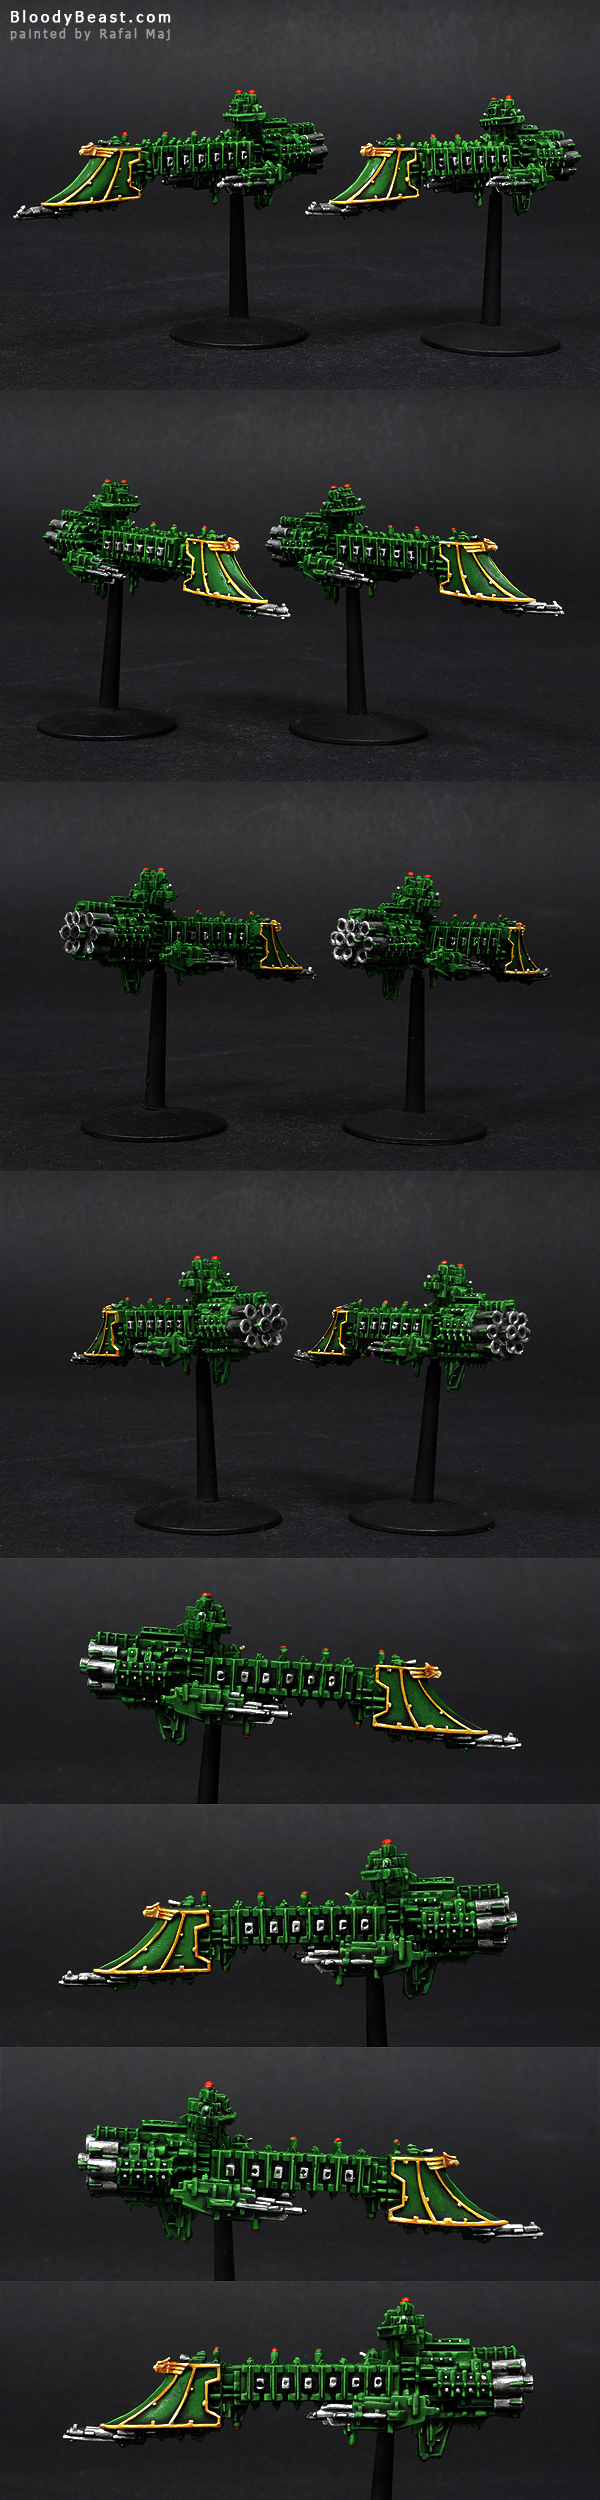 Battlefleet Gothic Imperial Dauntless Class Light Crusiers Lance painted by Rafal Maj (BloodyBeast.com)